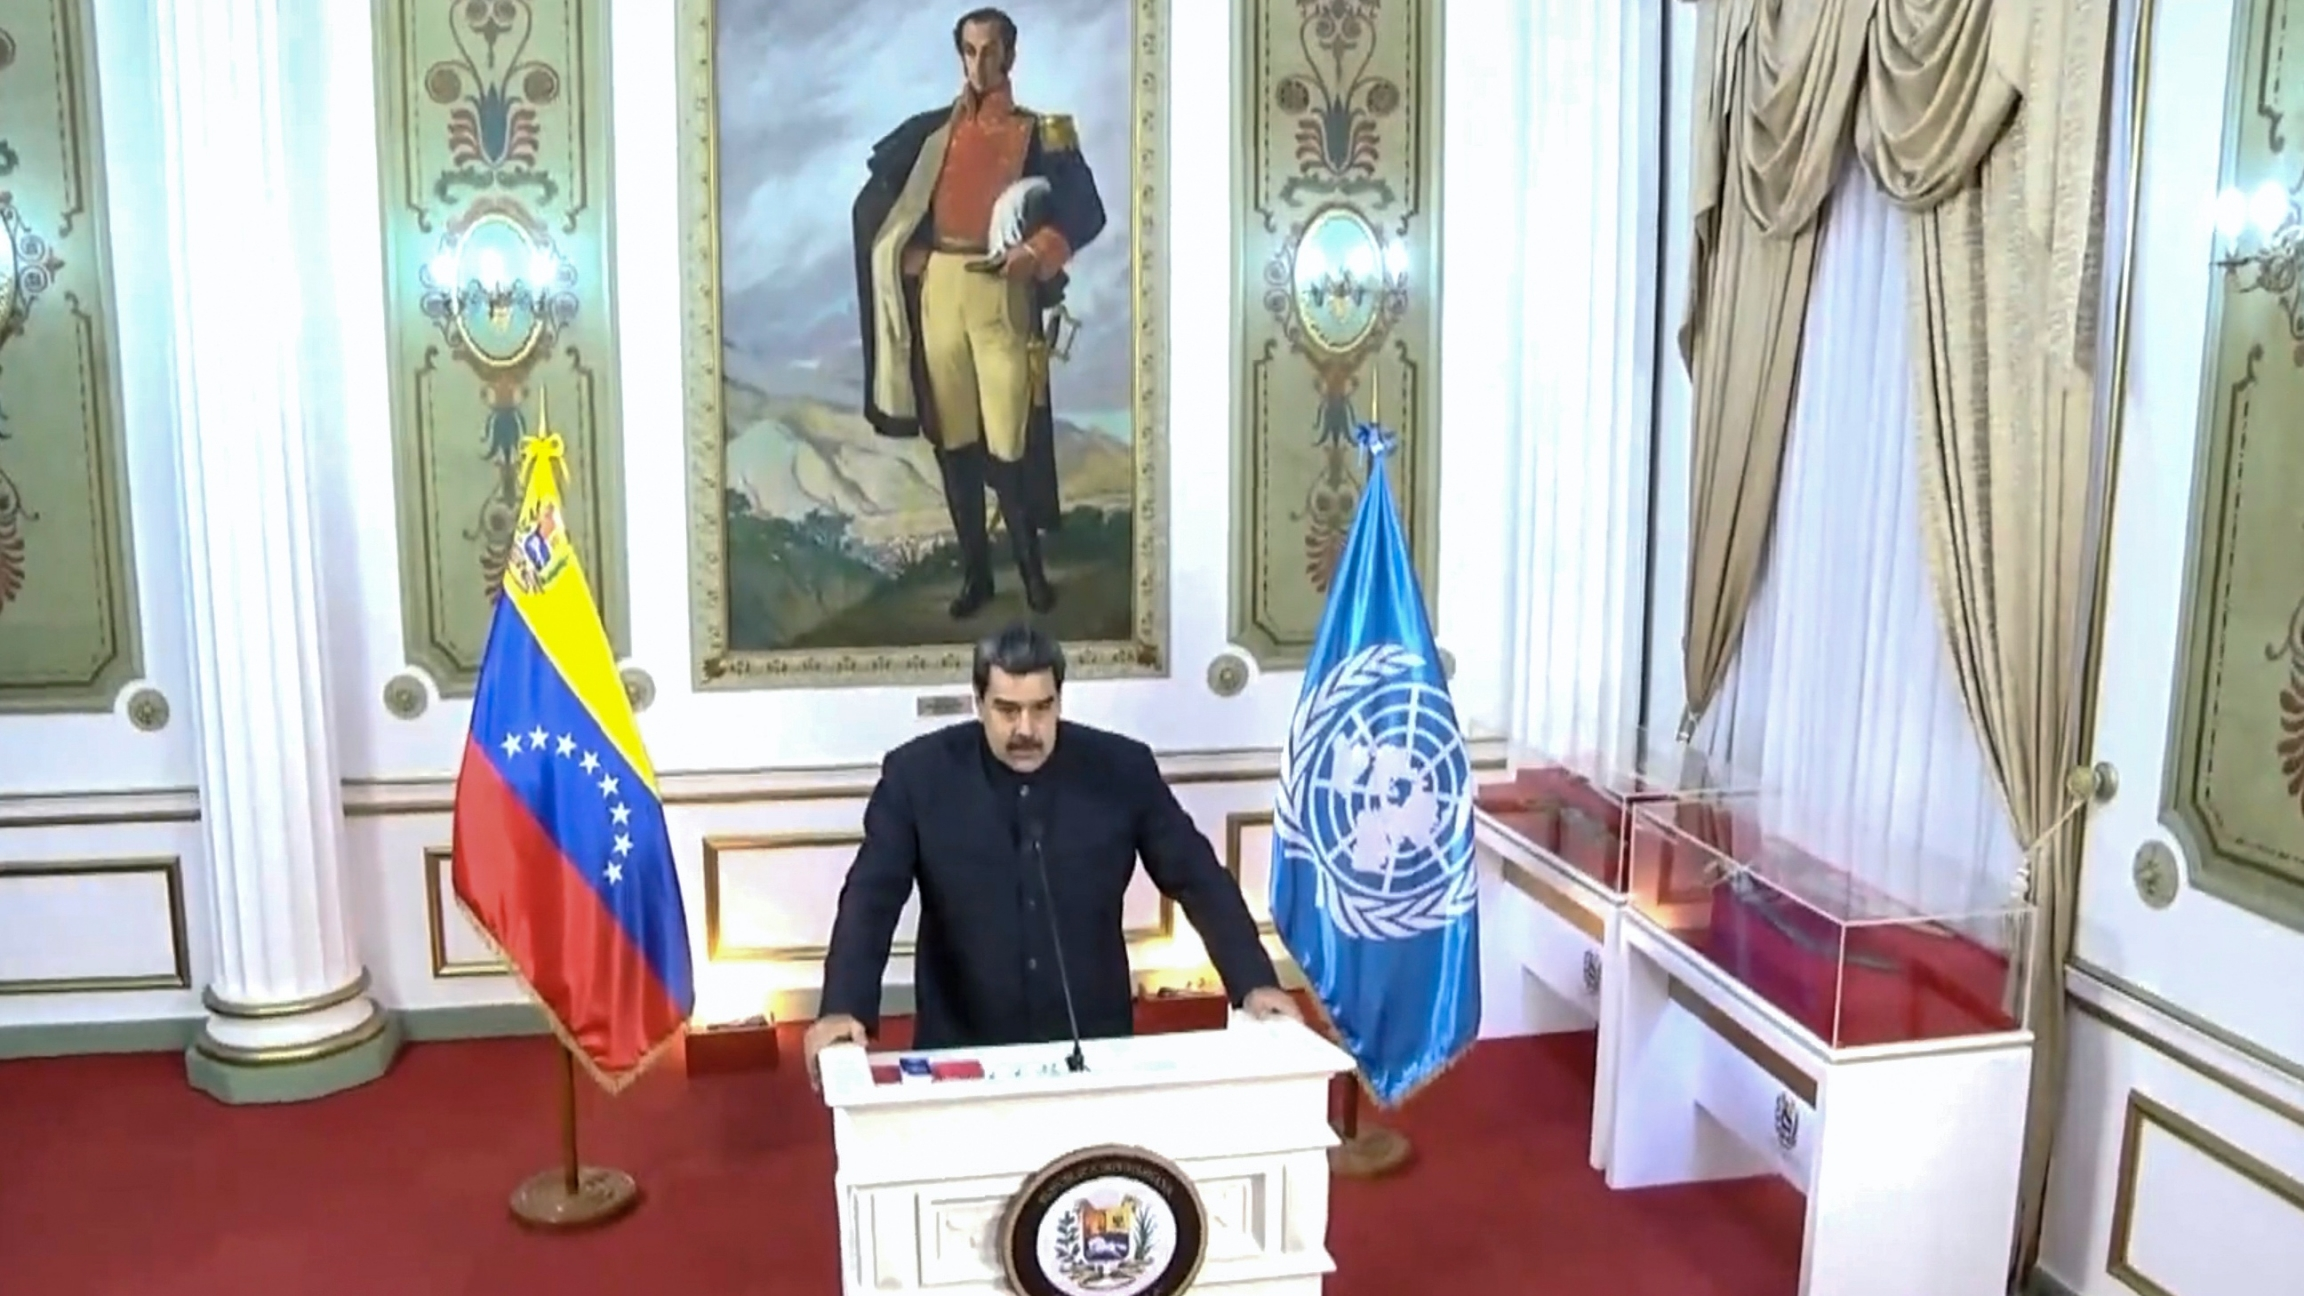 Maduro speaks at a white podium flanked by two flags in a decorative room with a painting of a uniformed man behind him.